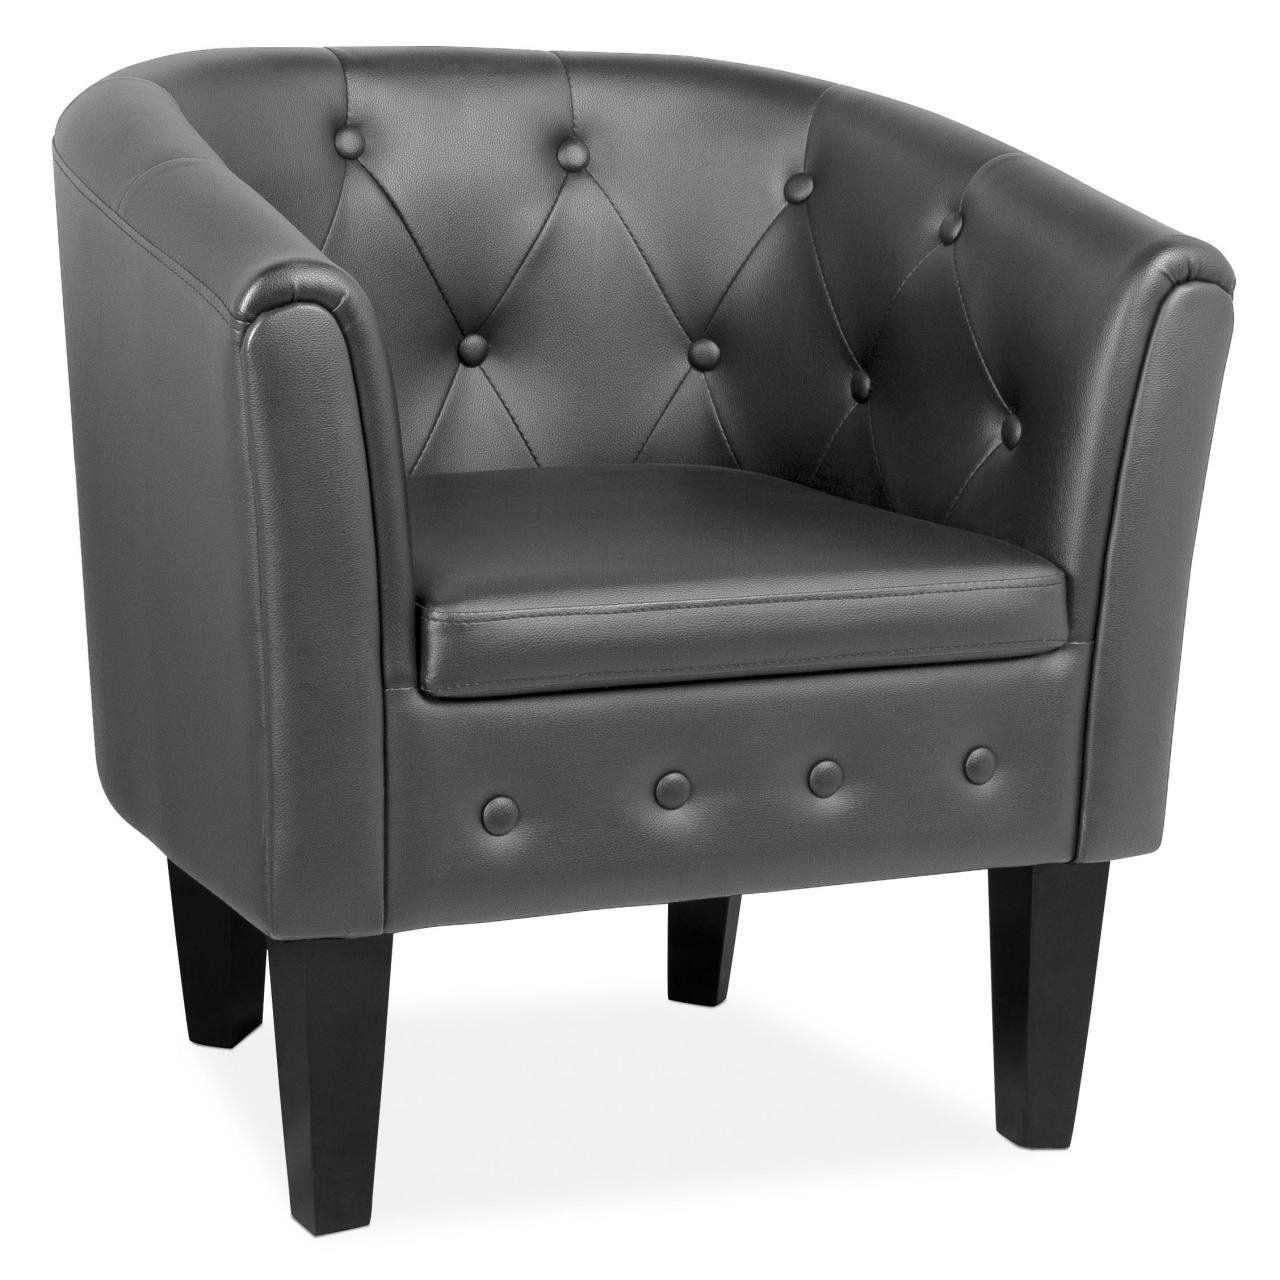 Cocktailsessel Beige Schicker Clubsessel Loungesessel Cocktailsessel In Schwarz